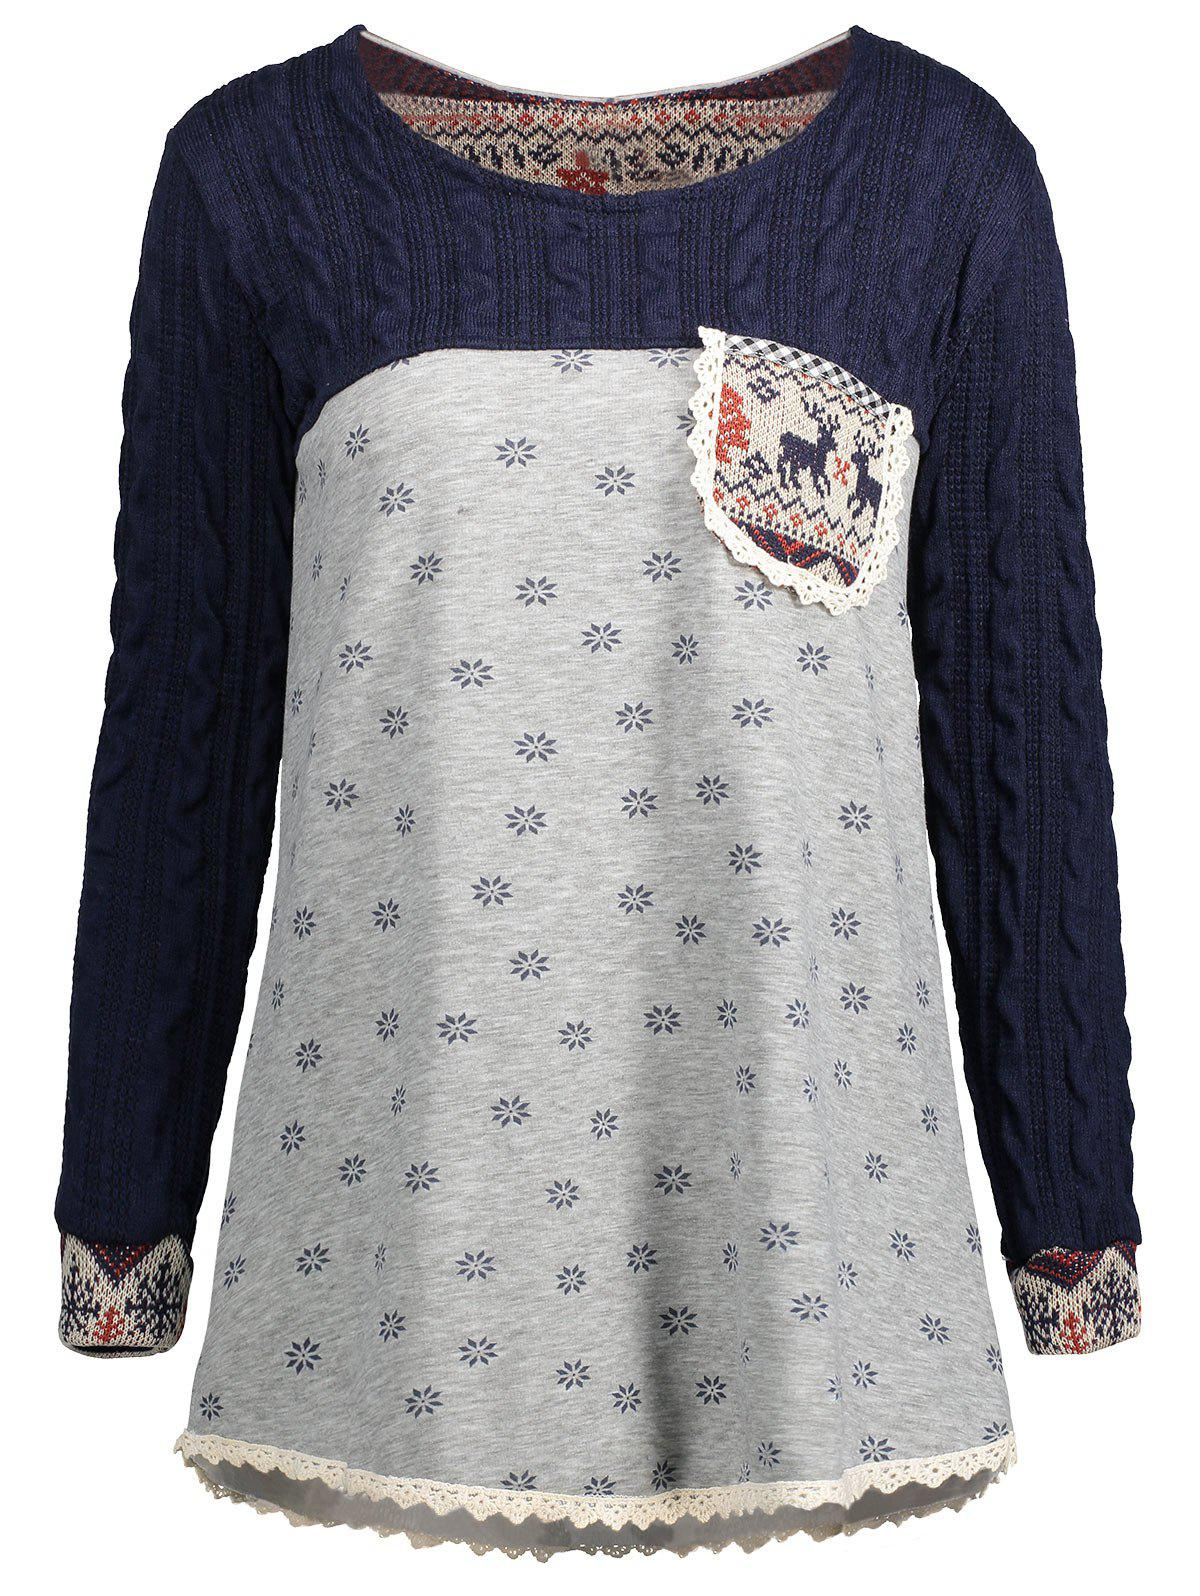 Lace Insert Snowflake Print Christmas Tunic SweaterWOMEN<br><br>Size: M; Color: LIGHT GRAY; Type: Pullovers; Material: Polyester,Spandex; Sleeve Length: Full; Collar: Round Neck; Style: Fashion; Pattern Type: Geometric; Season: Fall,Spring; Weight: 0.4500kg; Package Contents: 1 x Sweater;